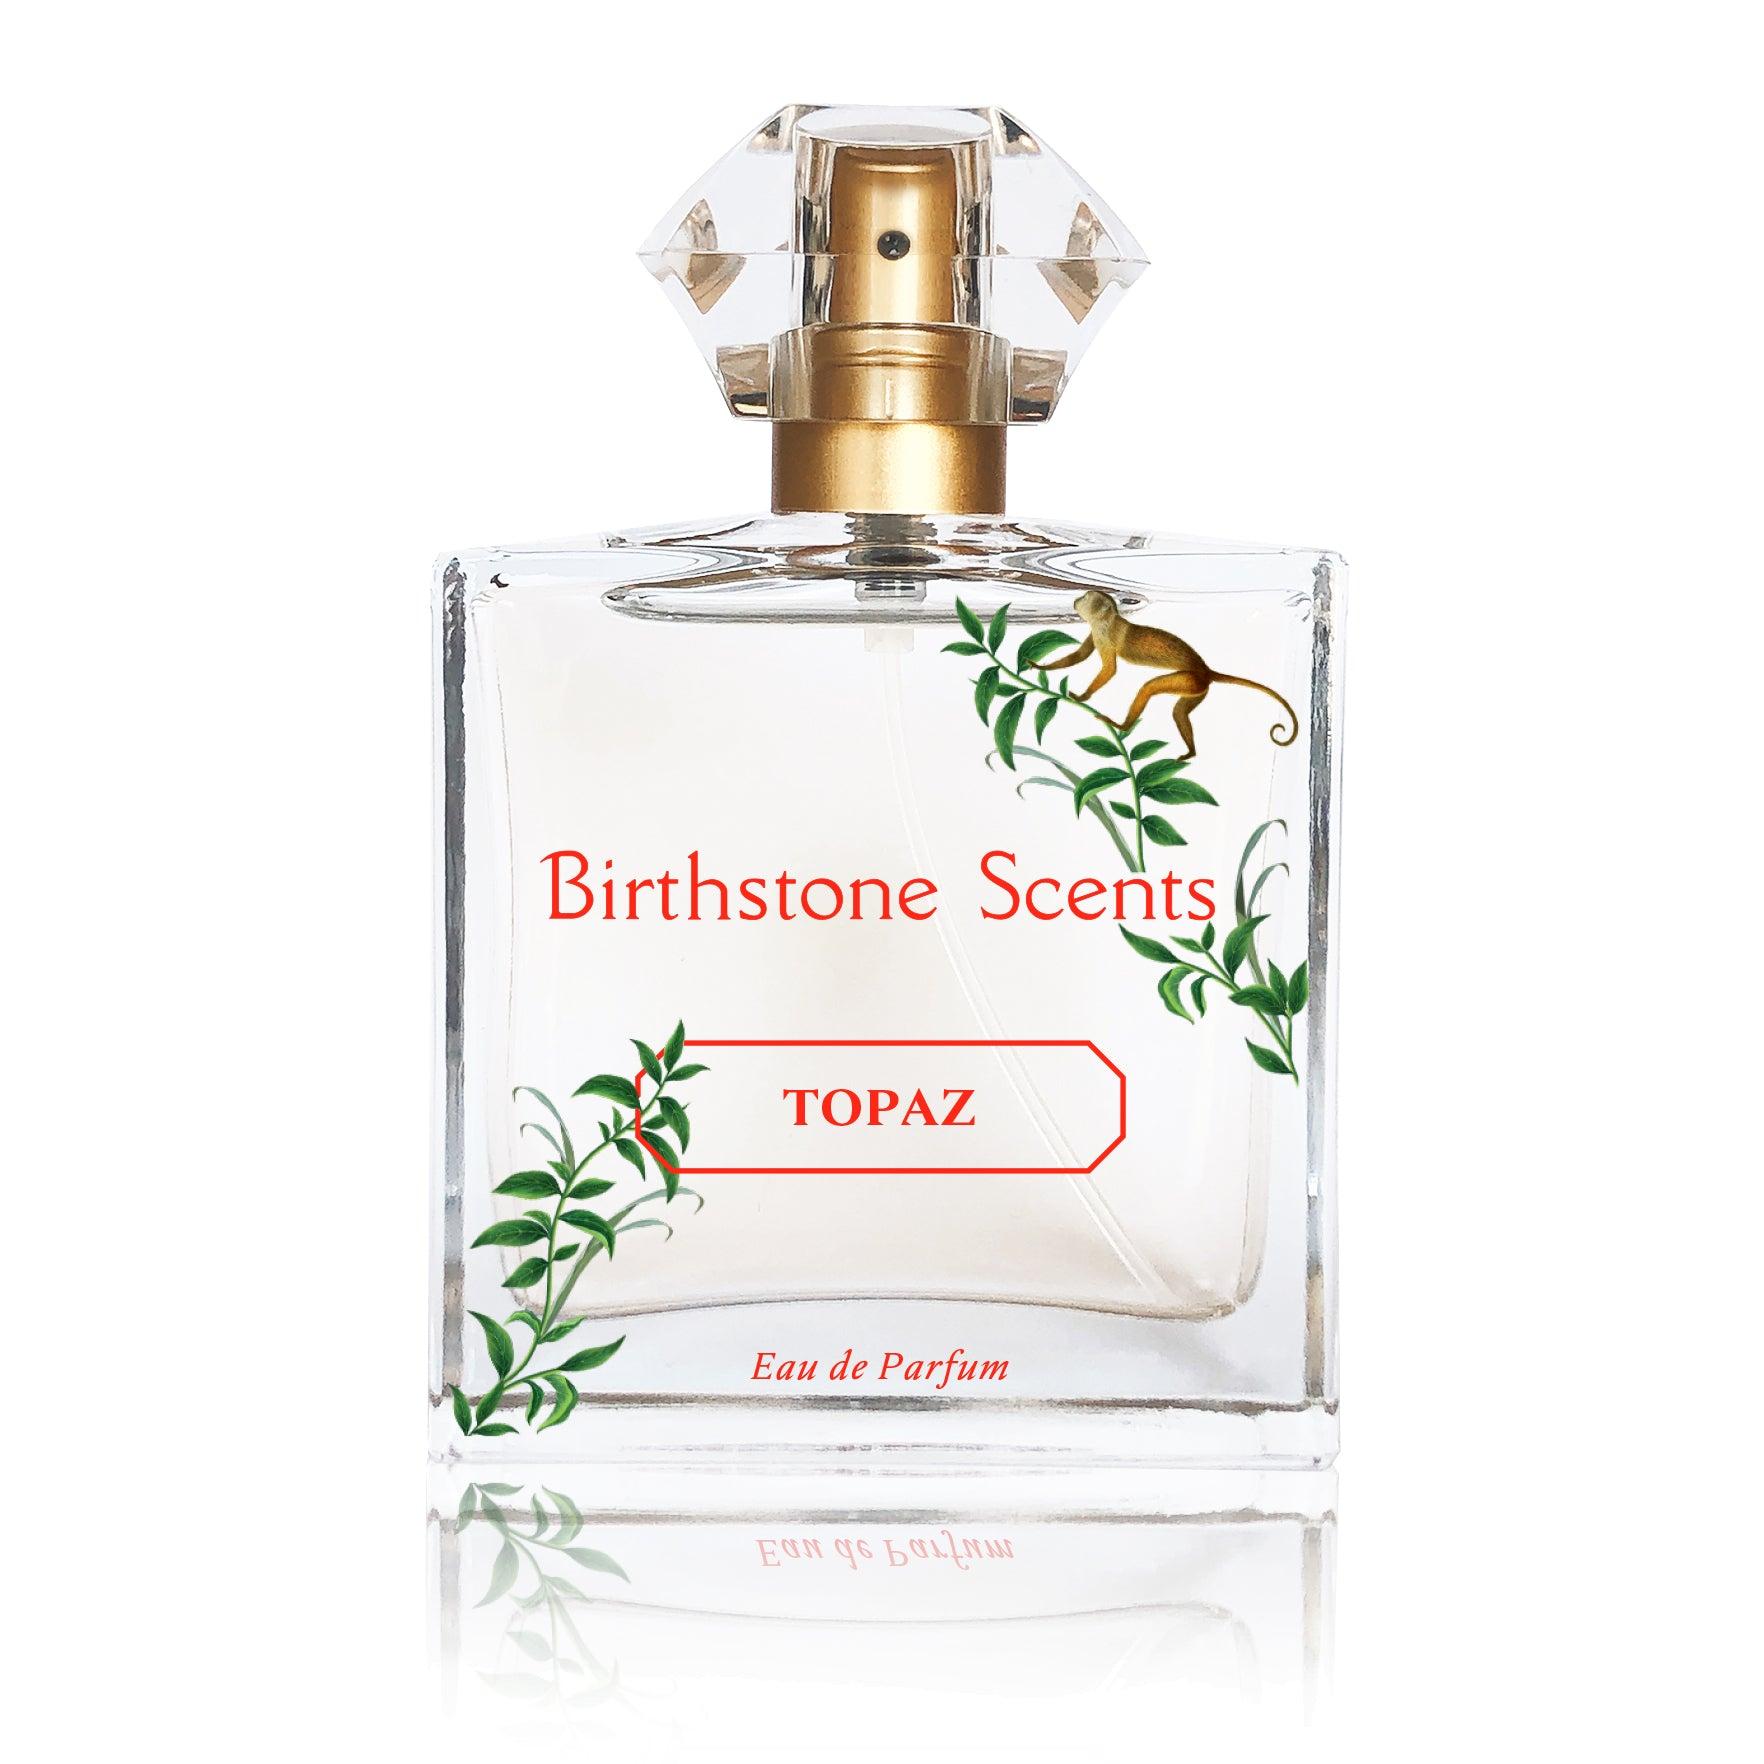 TOPAZ PERFUME | November - Birthstone Scents